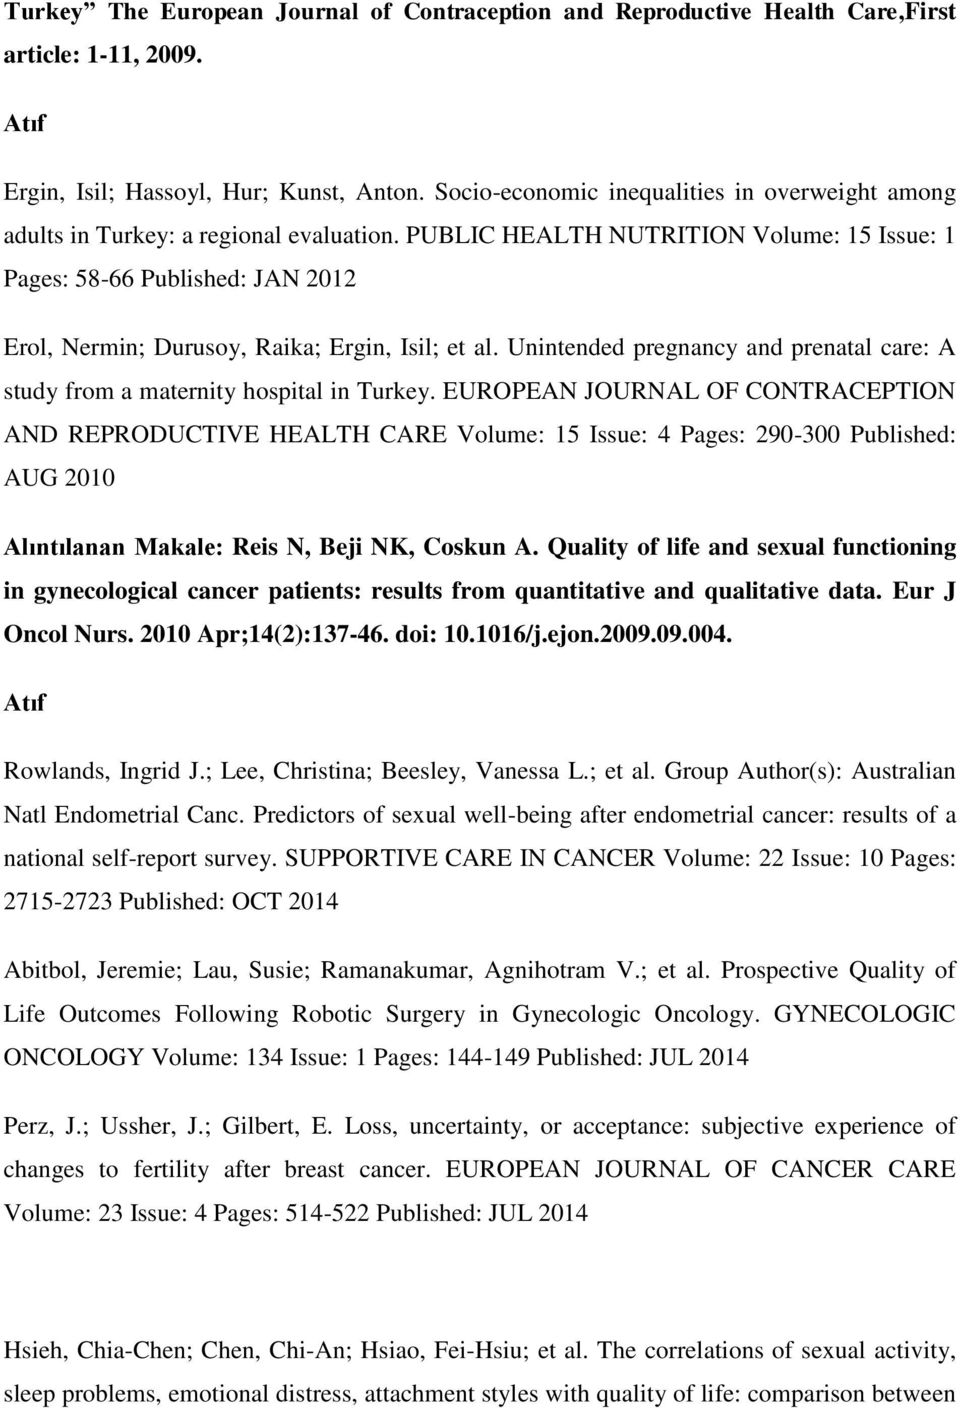 PUBLIC HEALTH NUTRITION Volume: 15 Issue: 1 Pages: 58-66 Published: JAN 2012 Erol, Nermin; Durusoy, Raika; Ergin, Isil; et al.